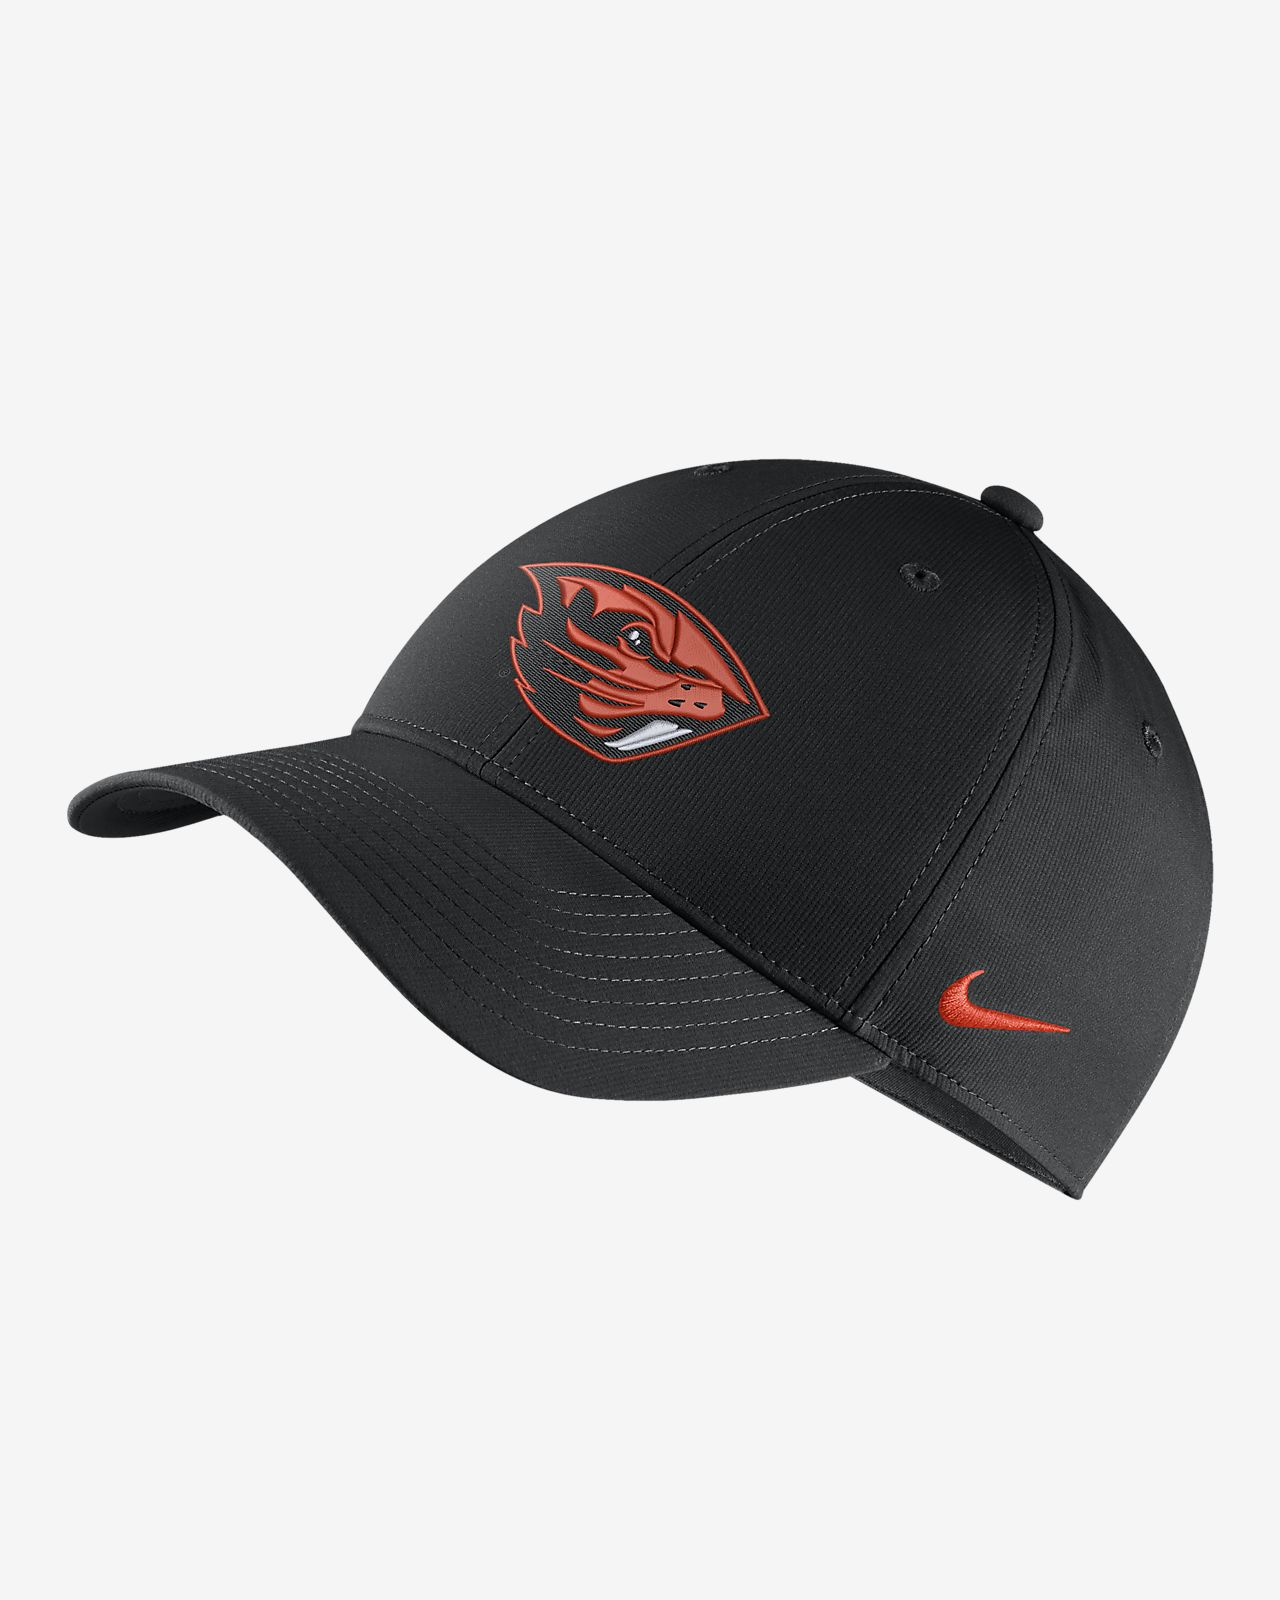 63bbd7f4 amazon nike college dri fit legacy91 oregon state adjustable hat 1ebe4 3b879